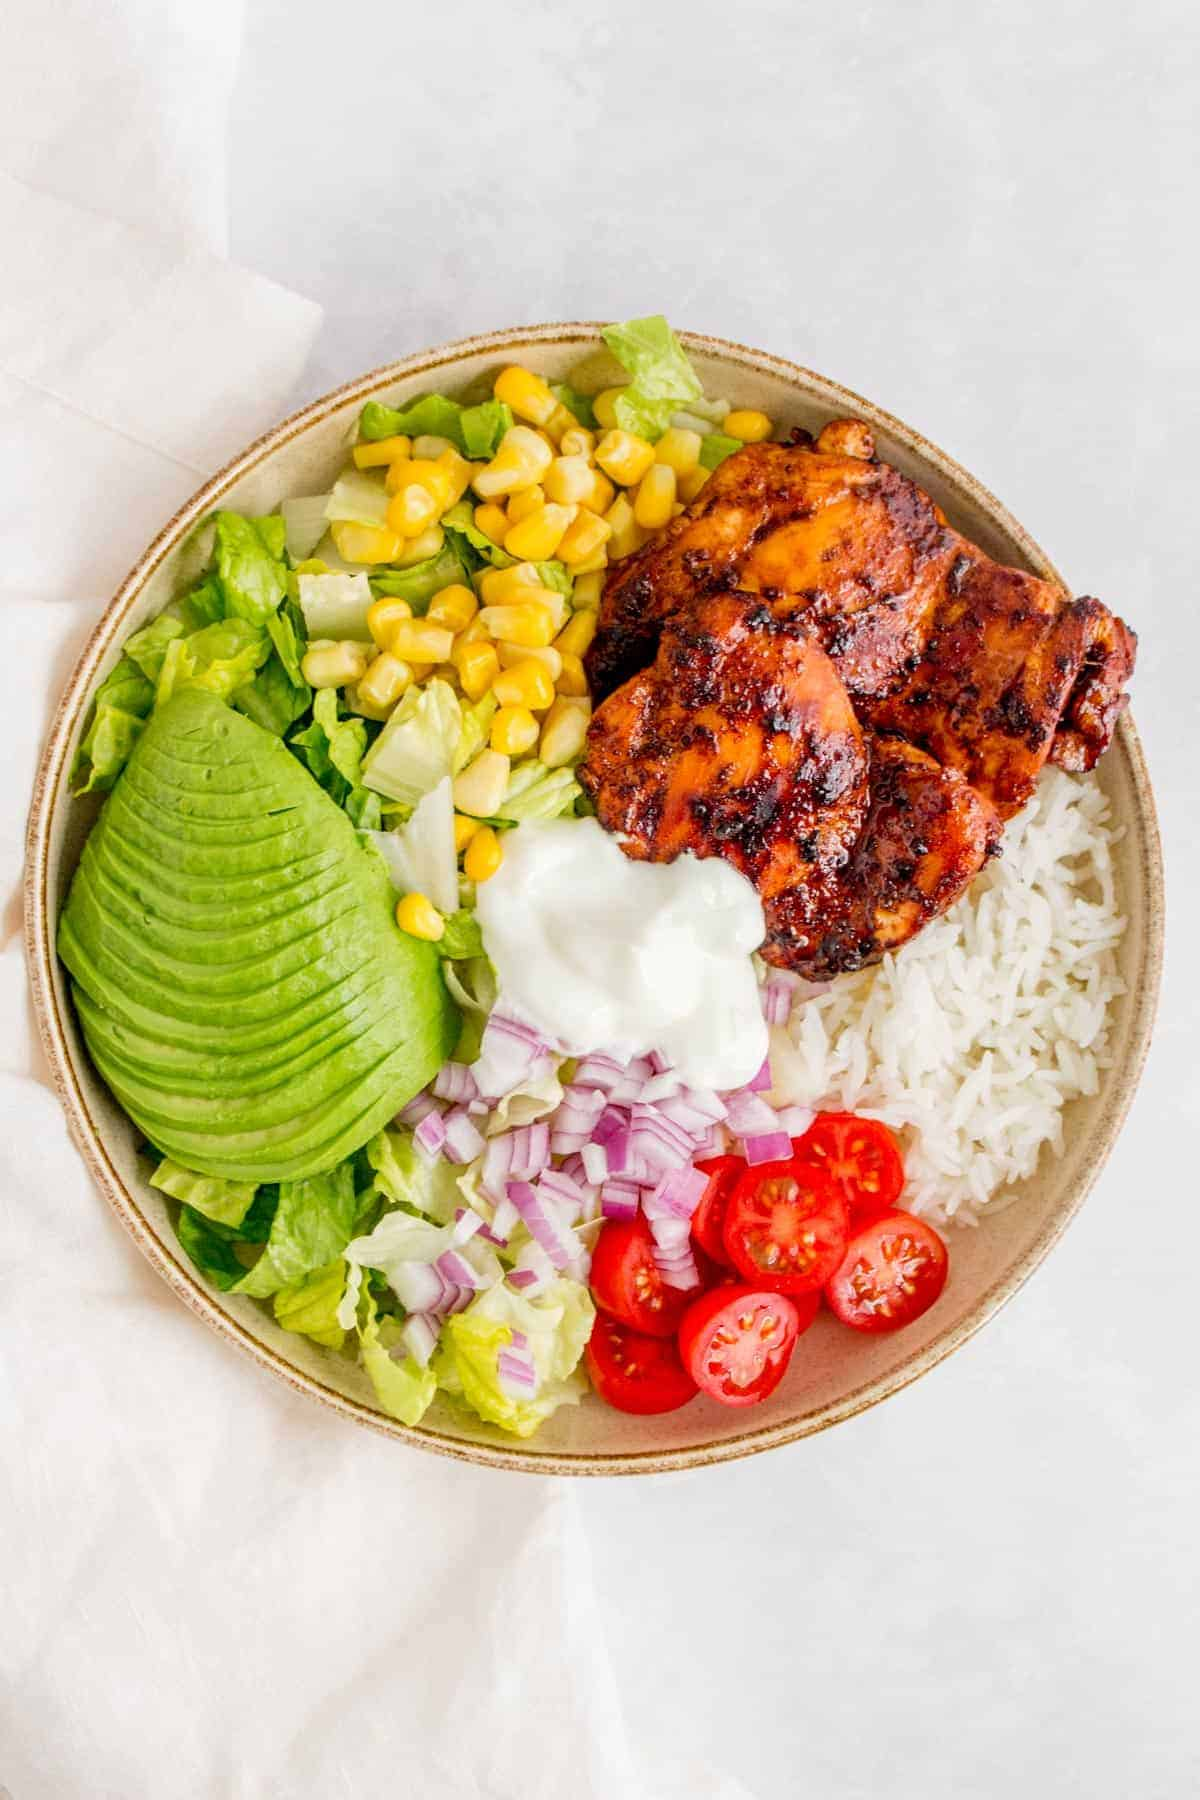 Honey chipotle chicken bowl with rice, corn, lettuce, tomatoes, onions, avocado, and sour cream.